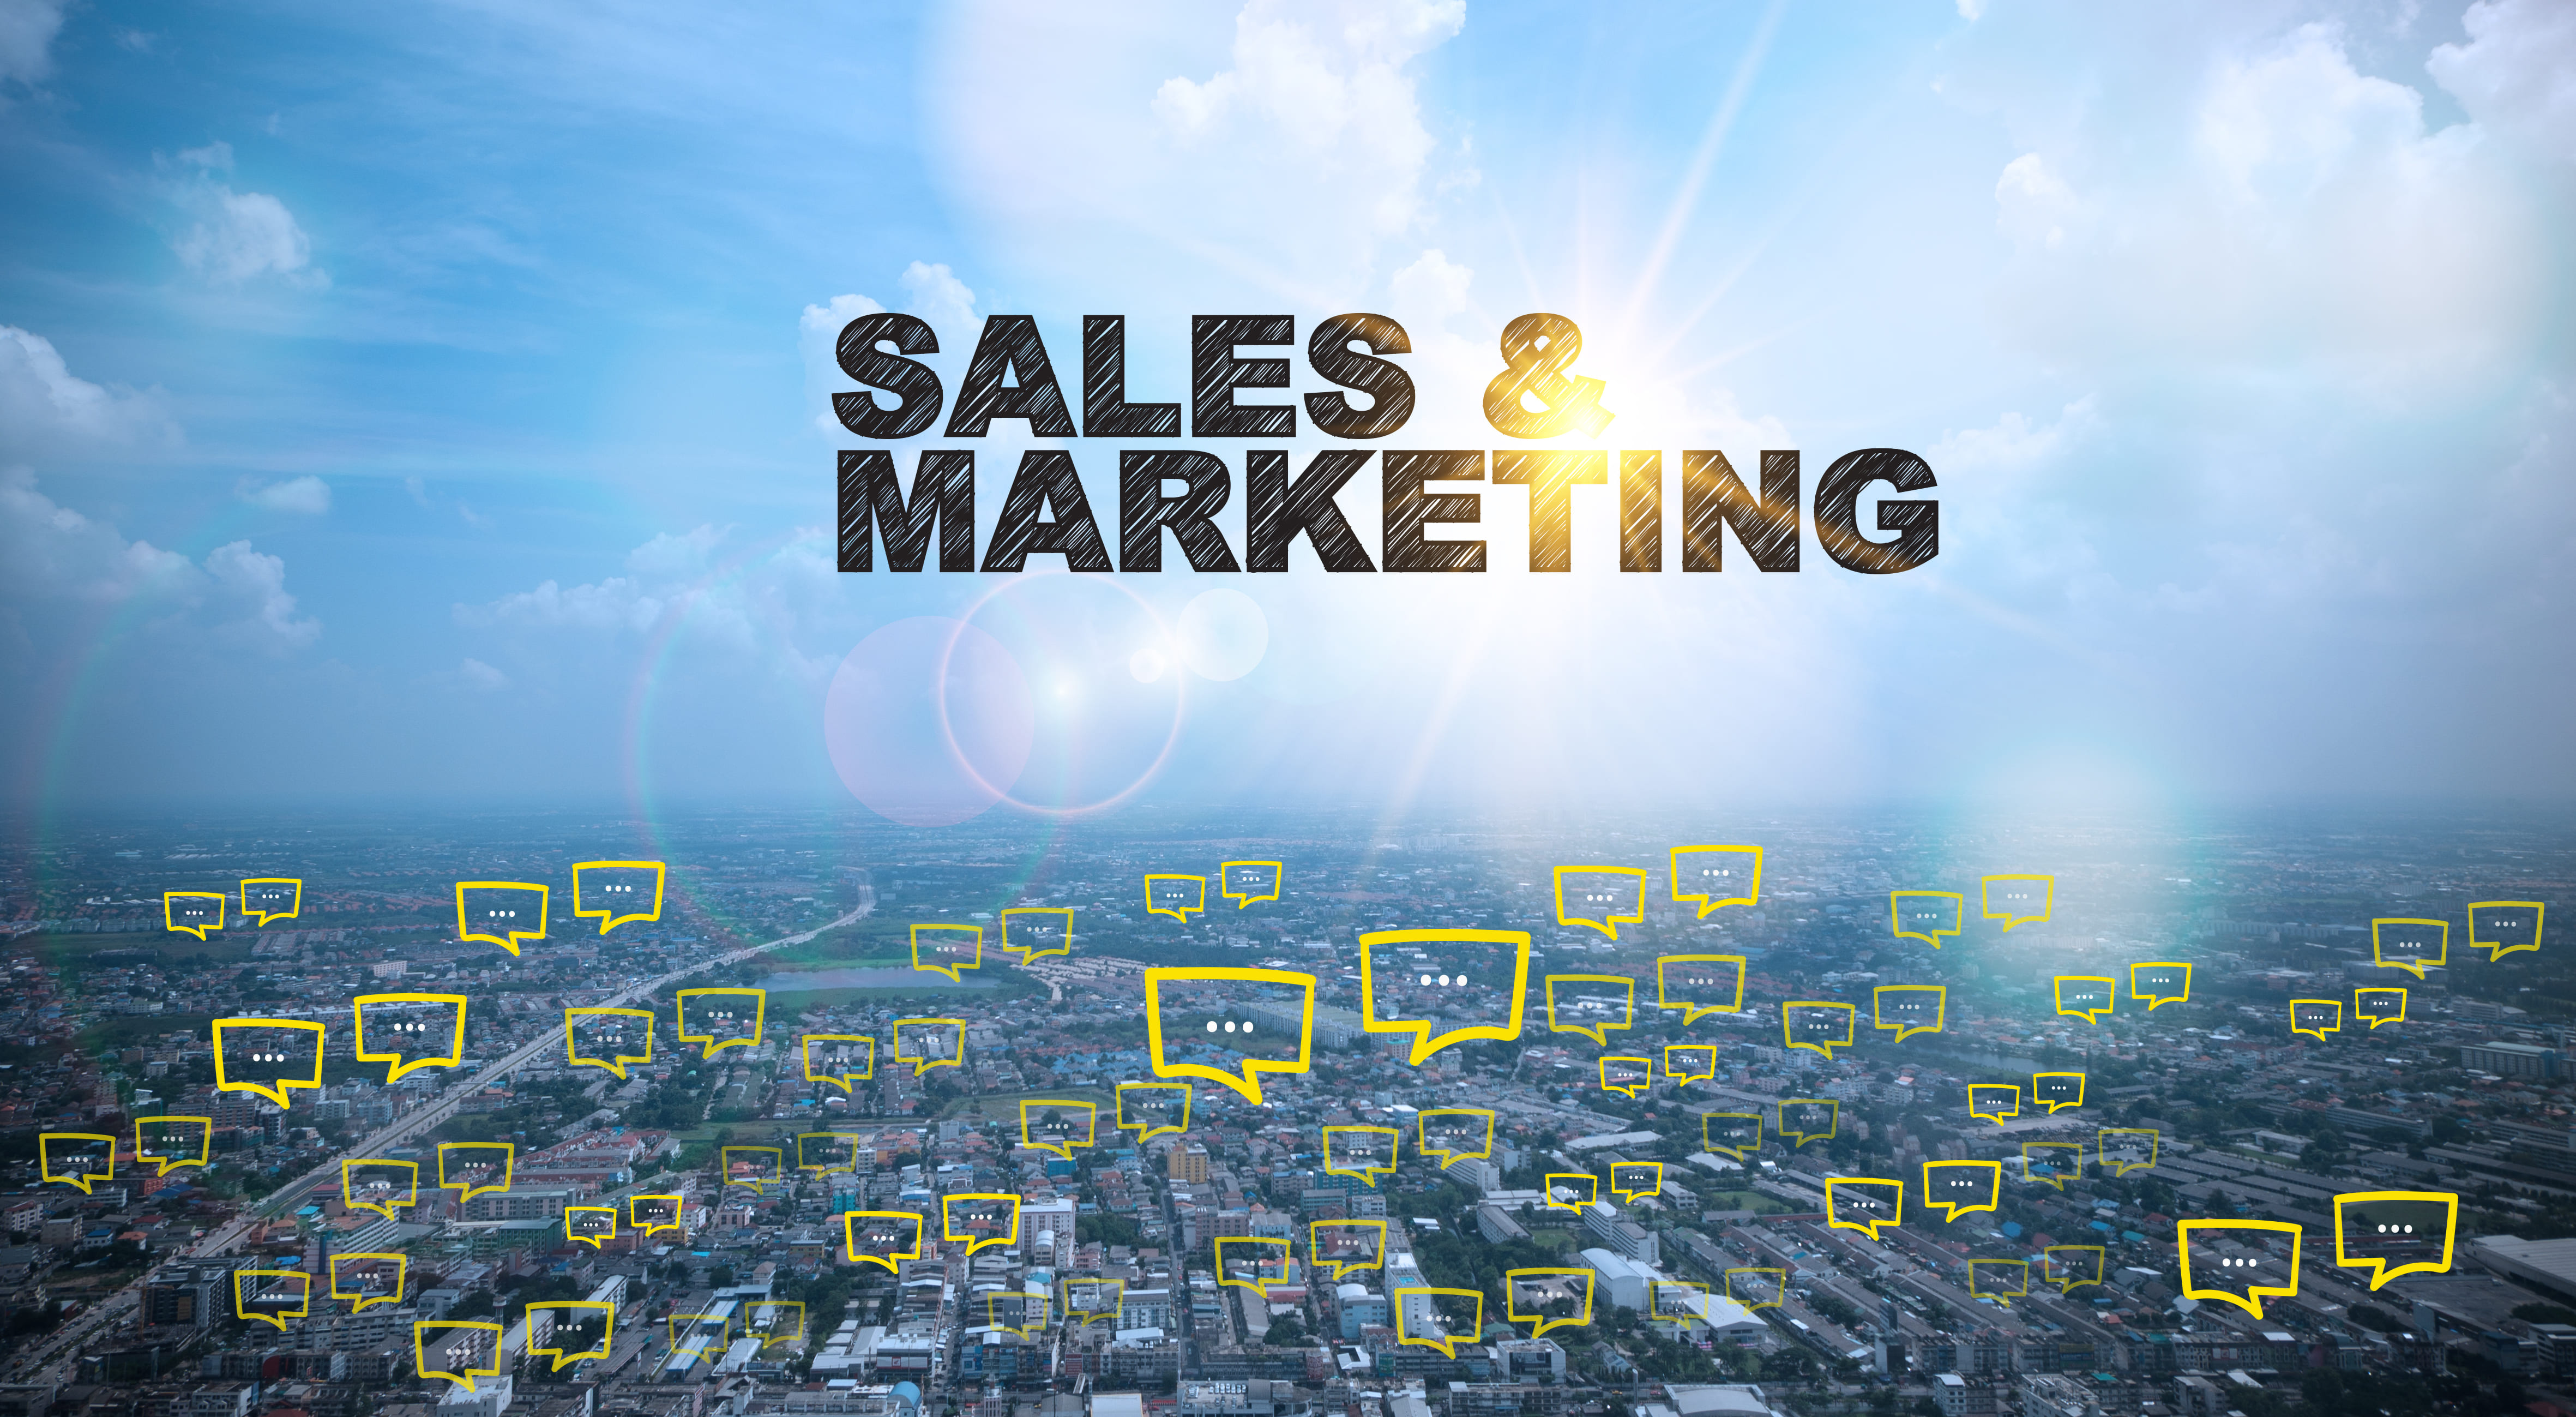 Imagem de sales marketing para remeter ao vendarketing abordado no texto